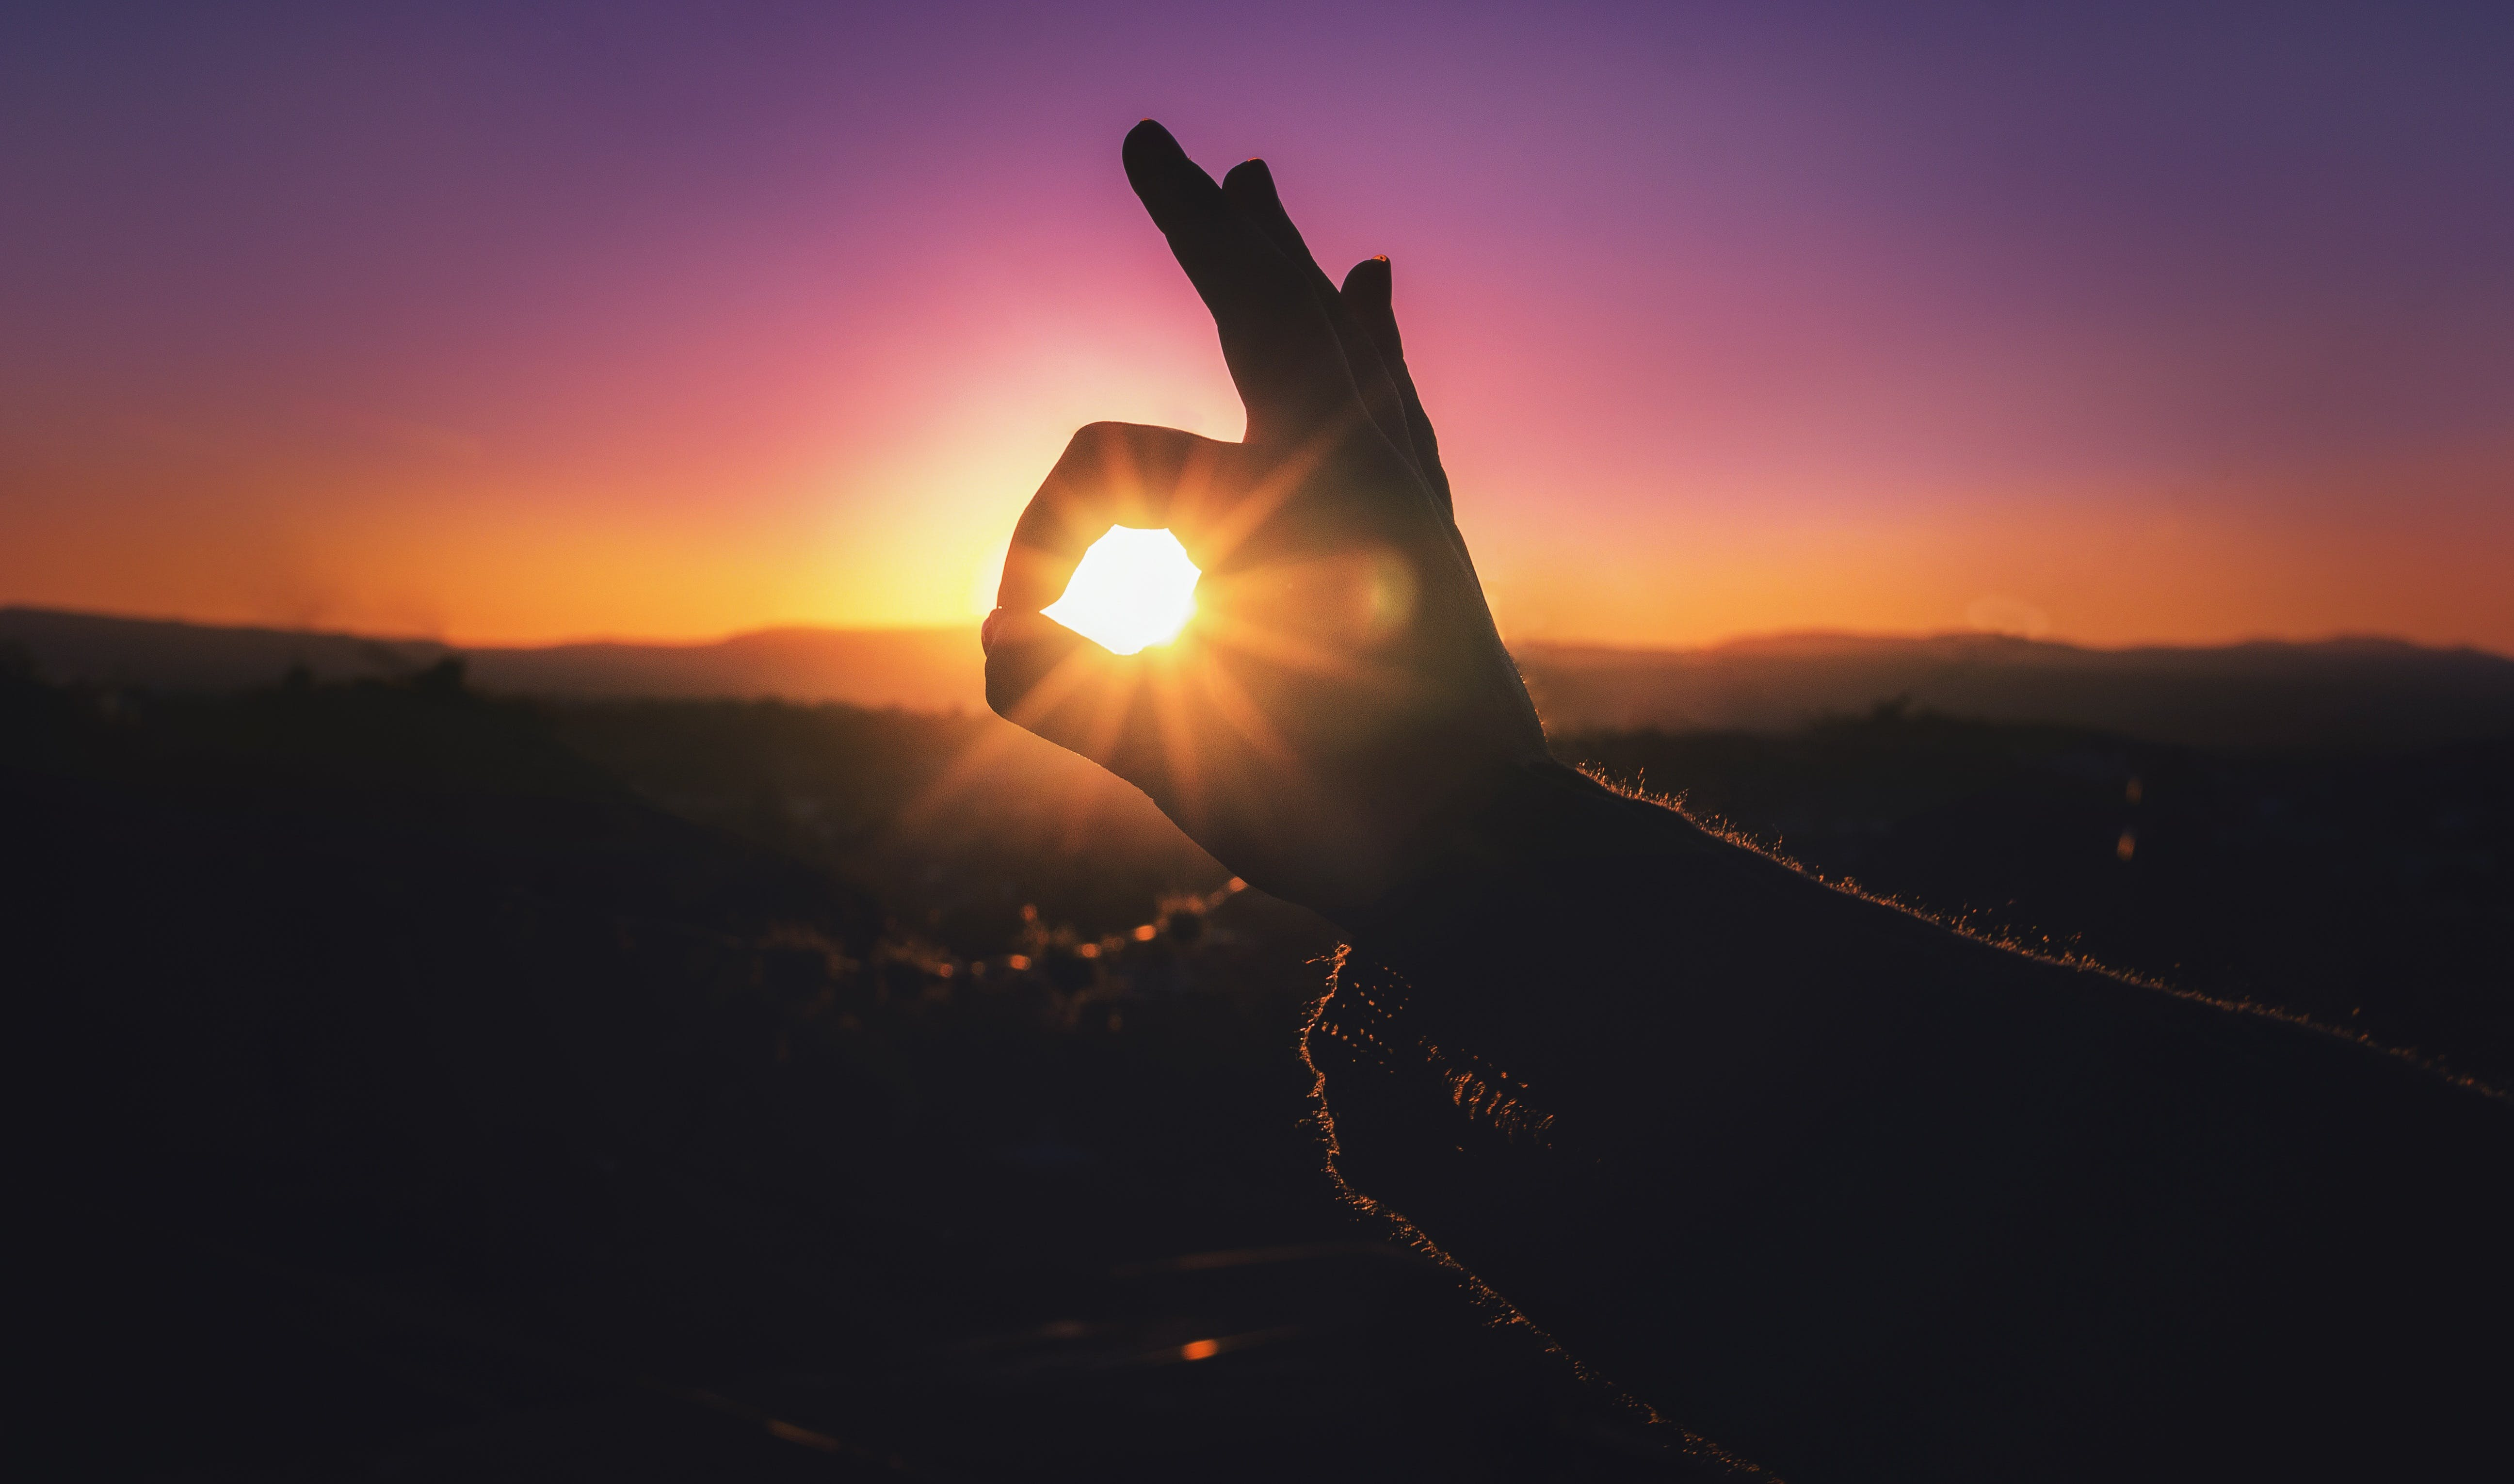 Person Doing Ok Hand Sign during Sunset